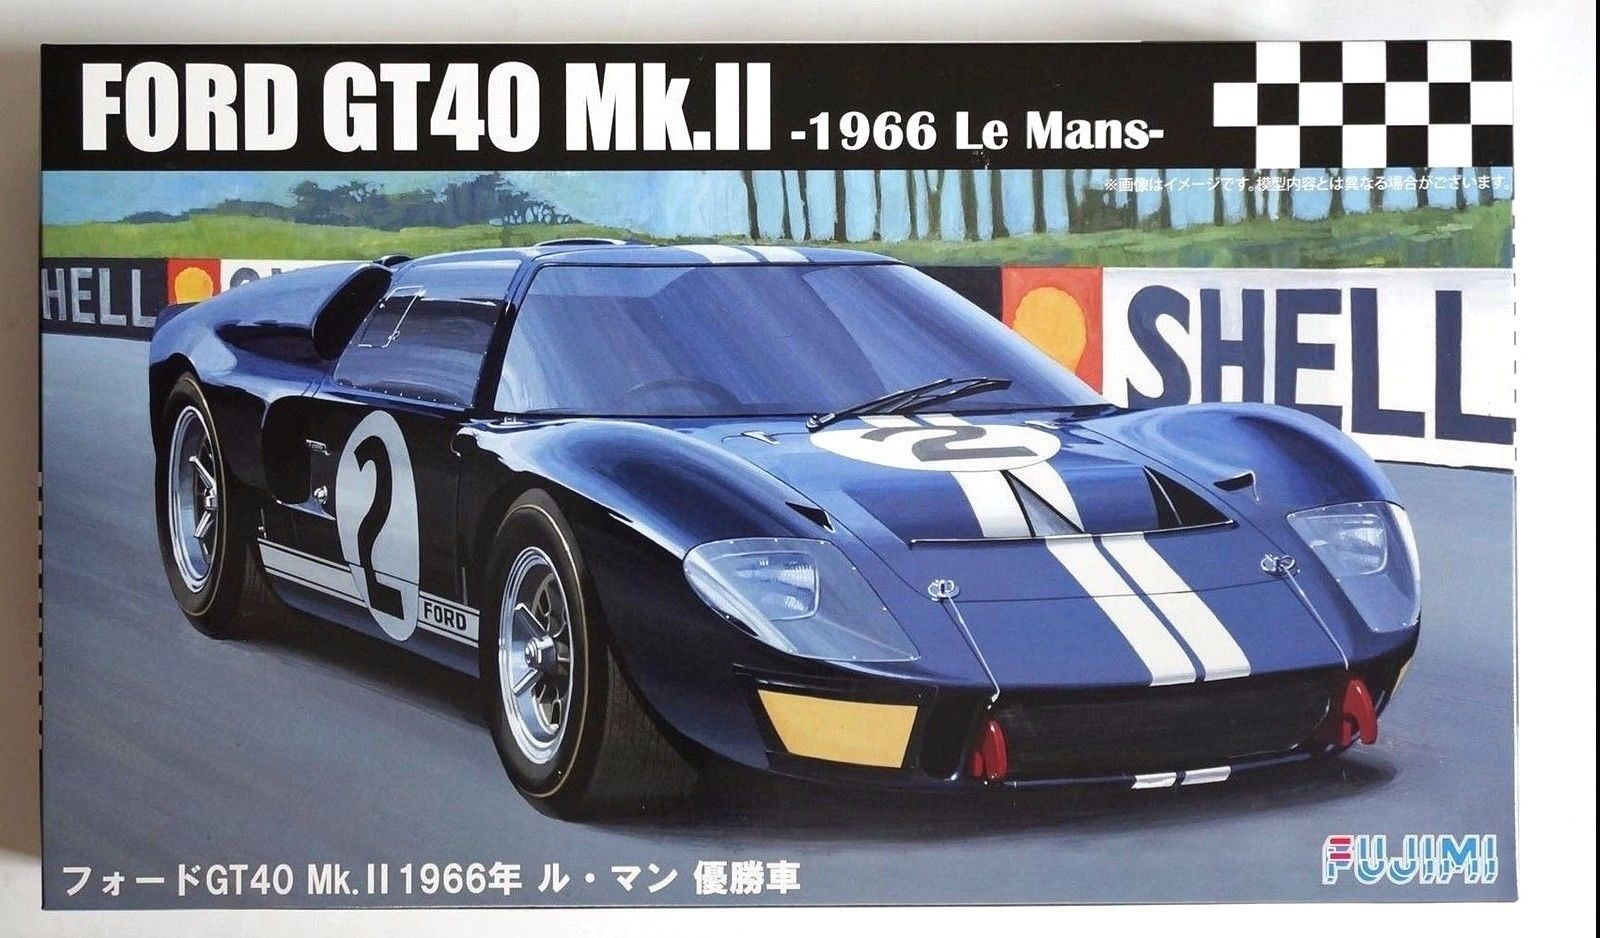 Fujimi Rs 16 1 24 Ford Gt40 Mk Ii 1966 Le Mans 24h Winner Scale